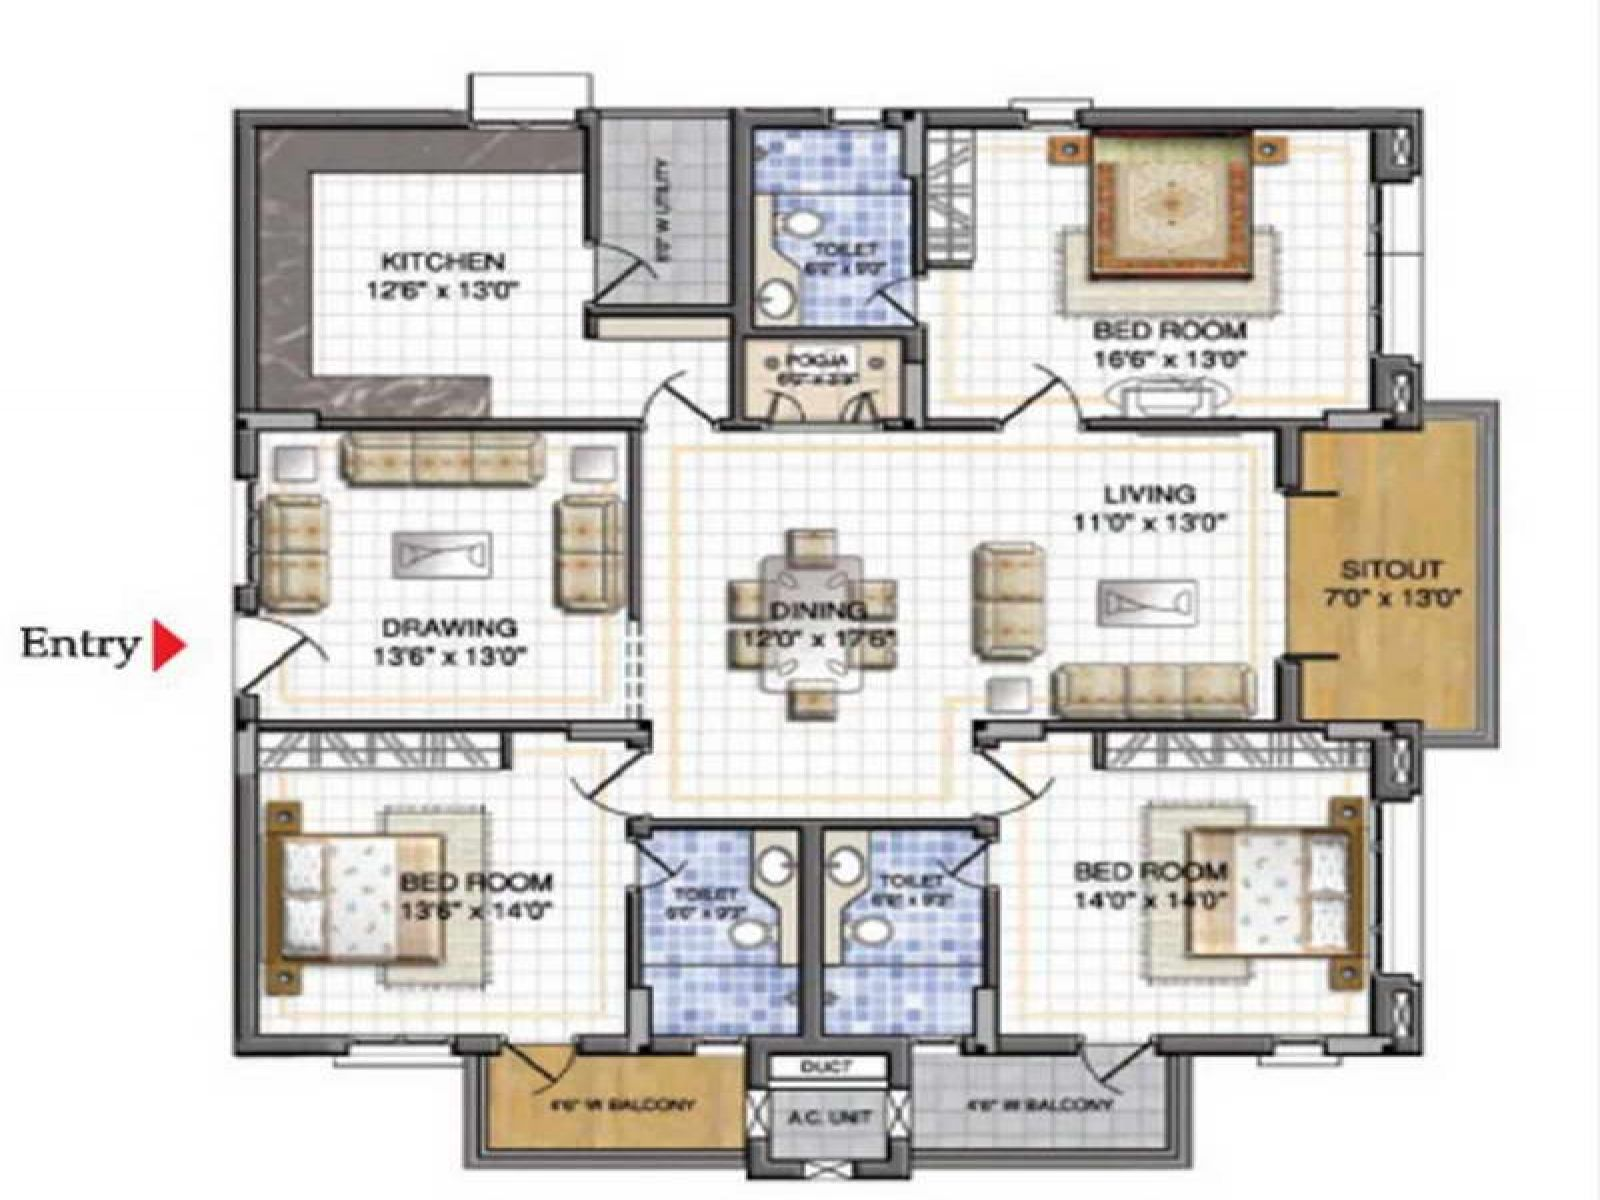 Sweet home 3d plans google search house designs Where can i find house plans